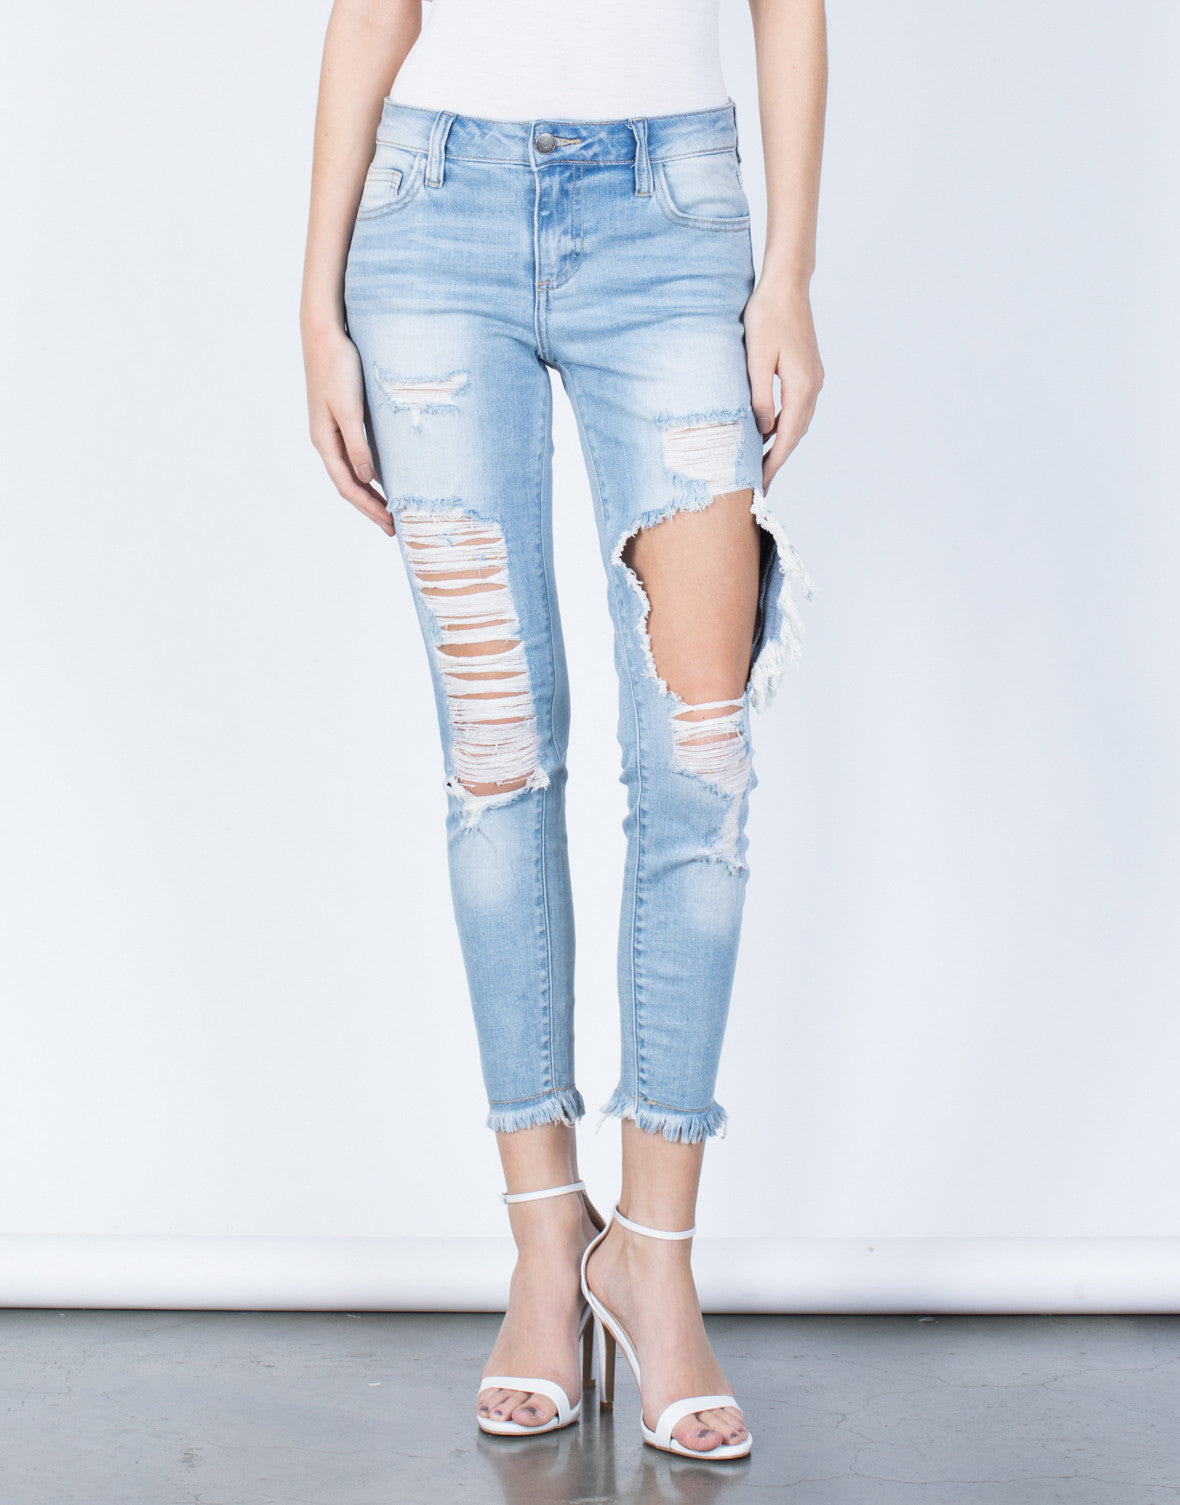 Front View of  Worn and Torn Jeans